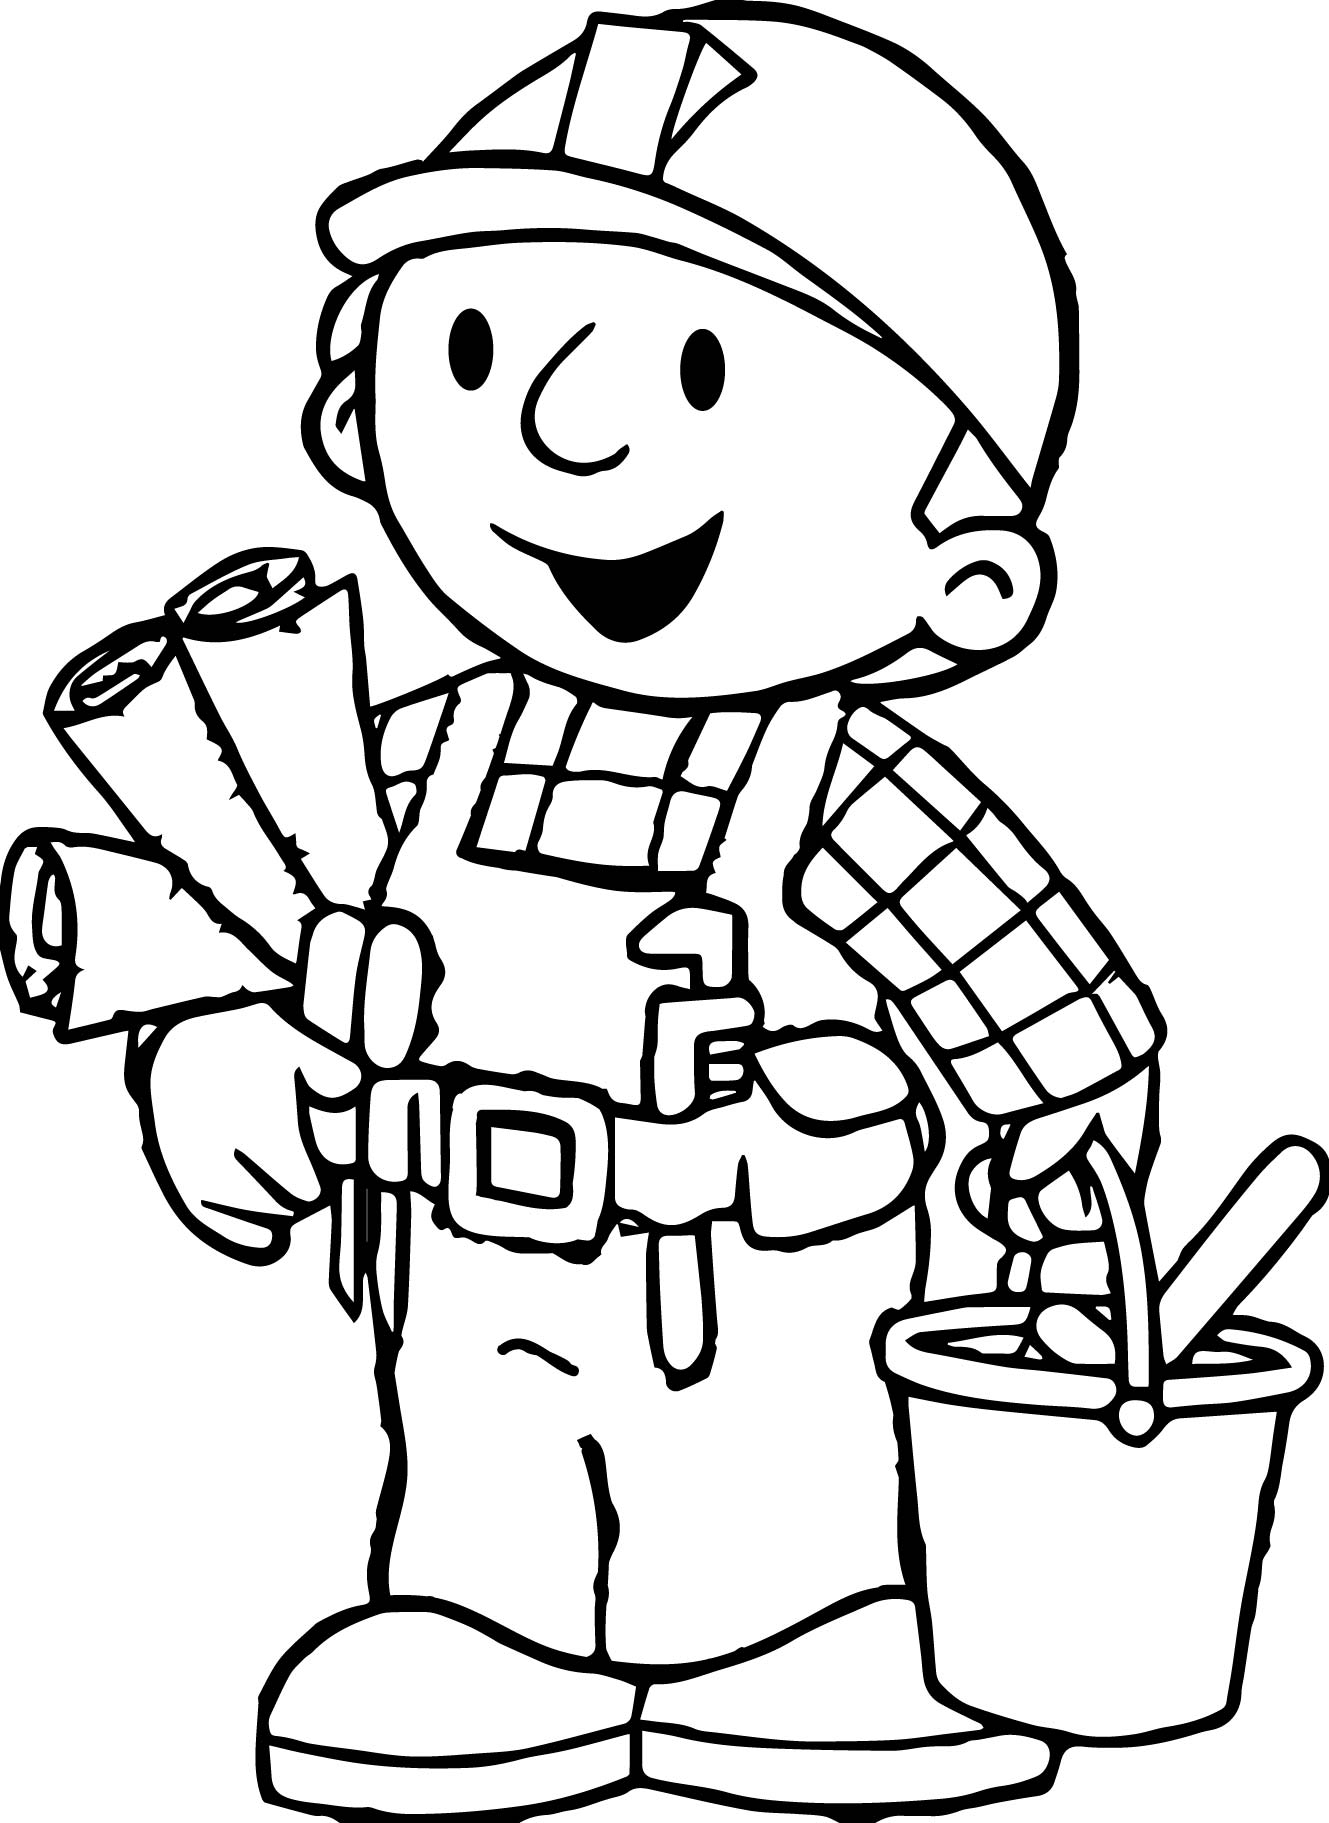 Excellent Bob The Builder Coloring Page With Johnny